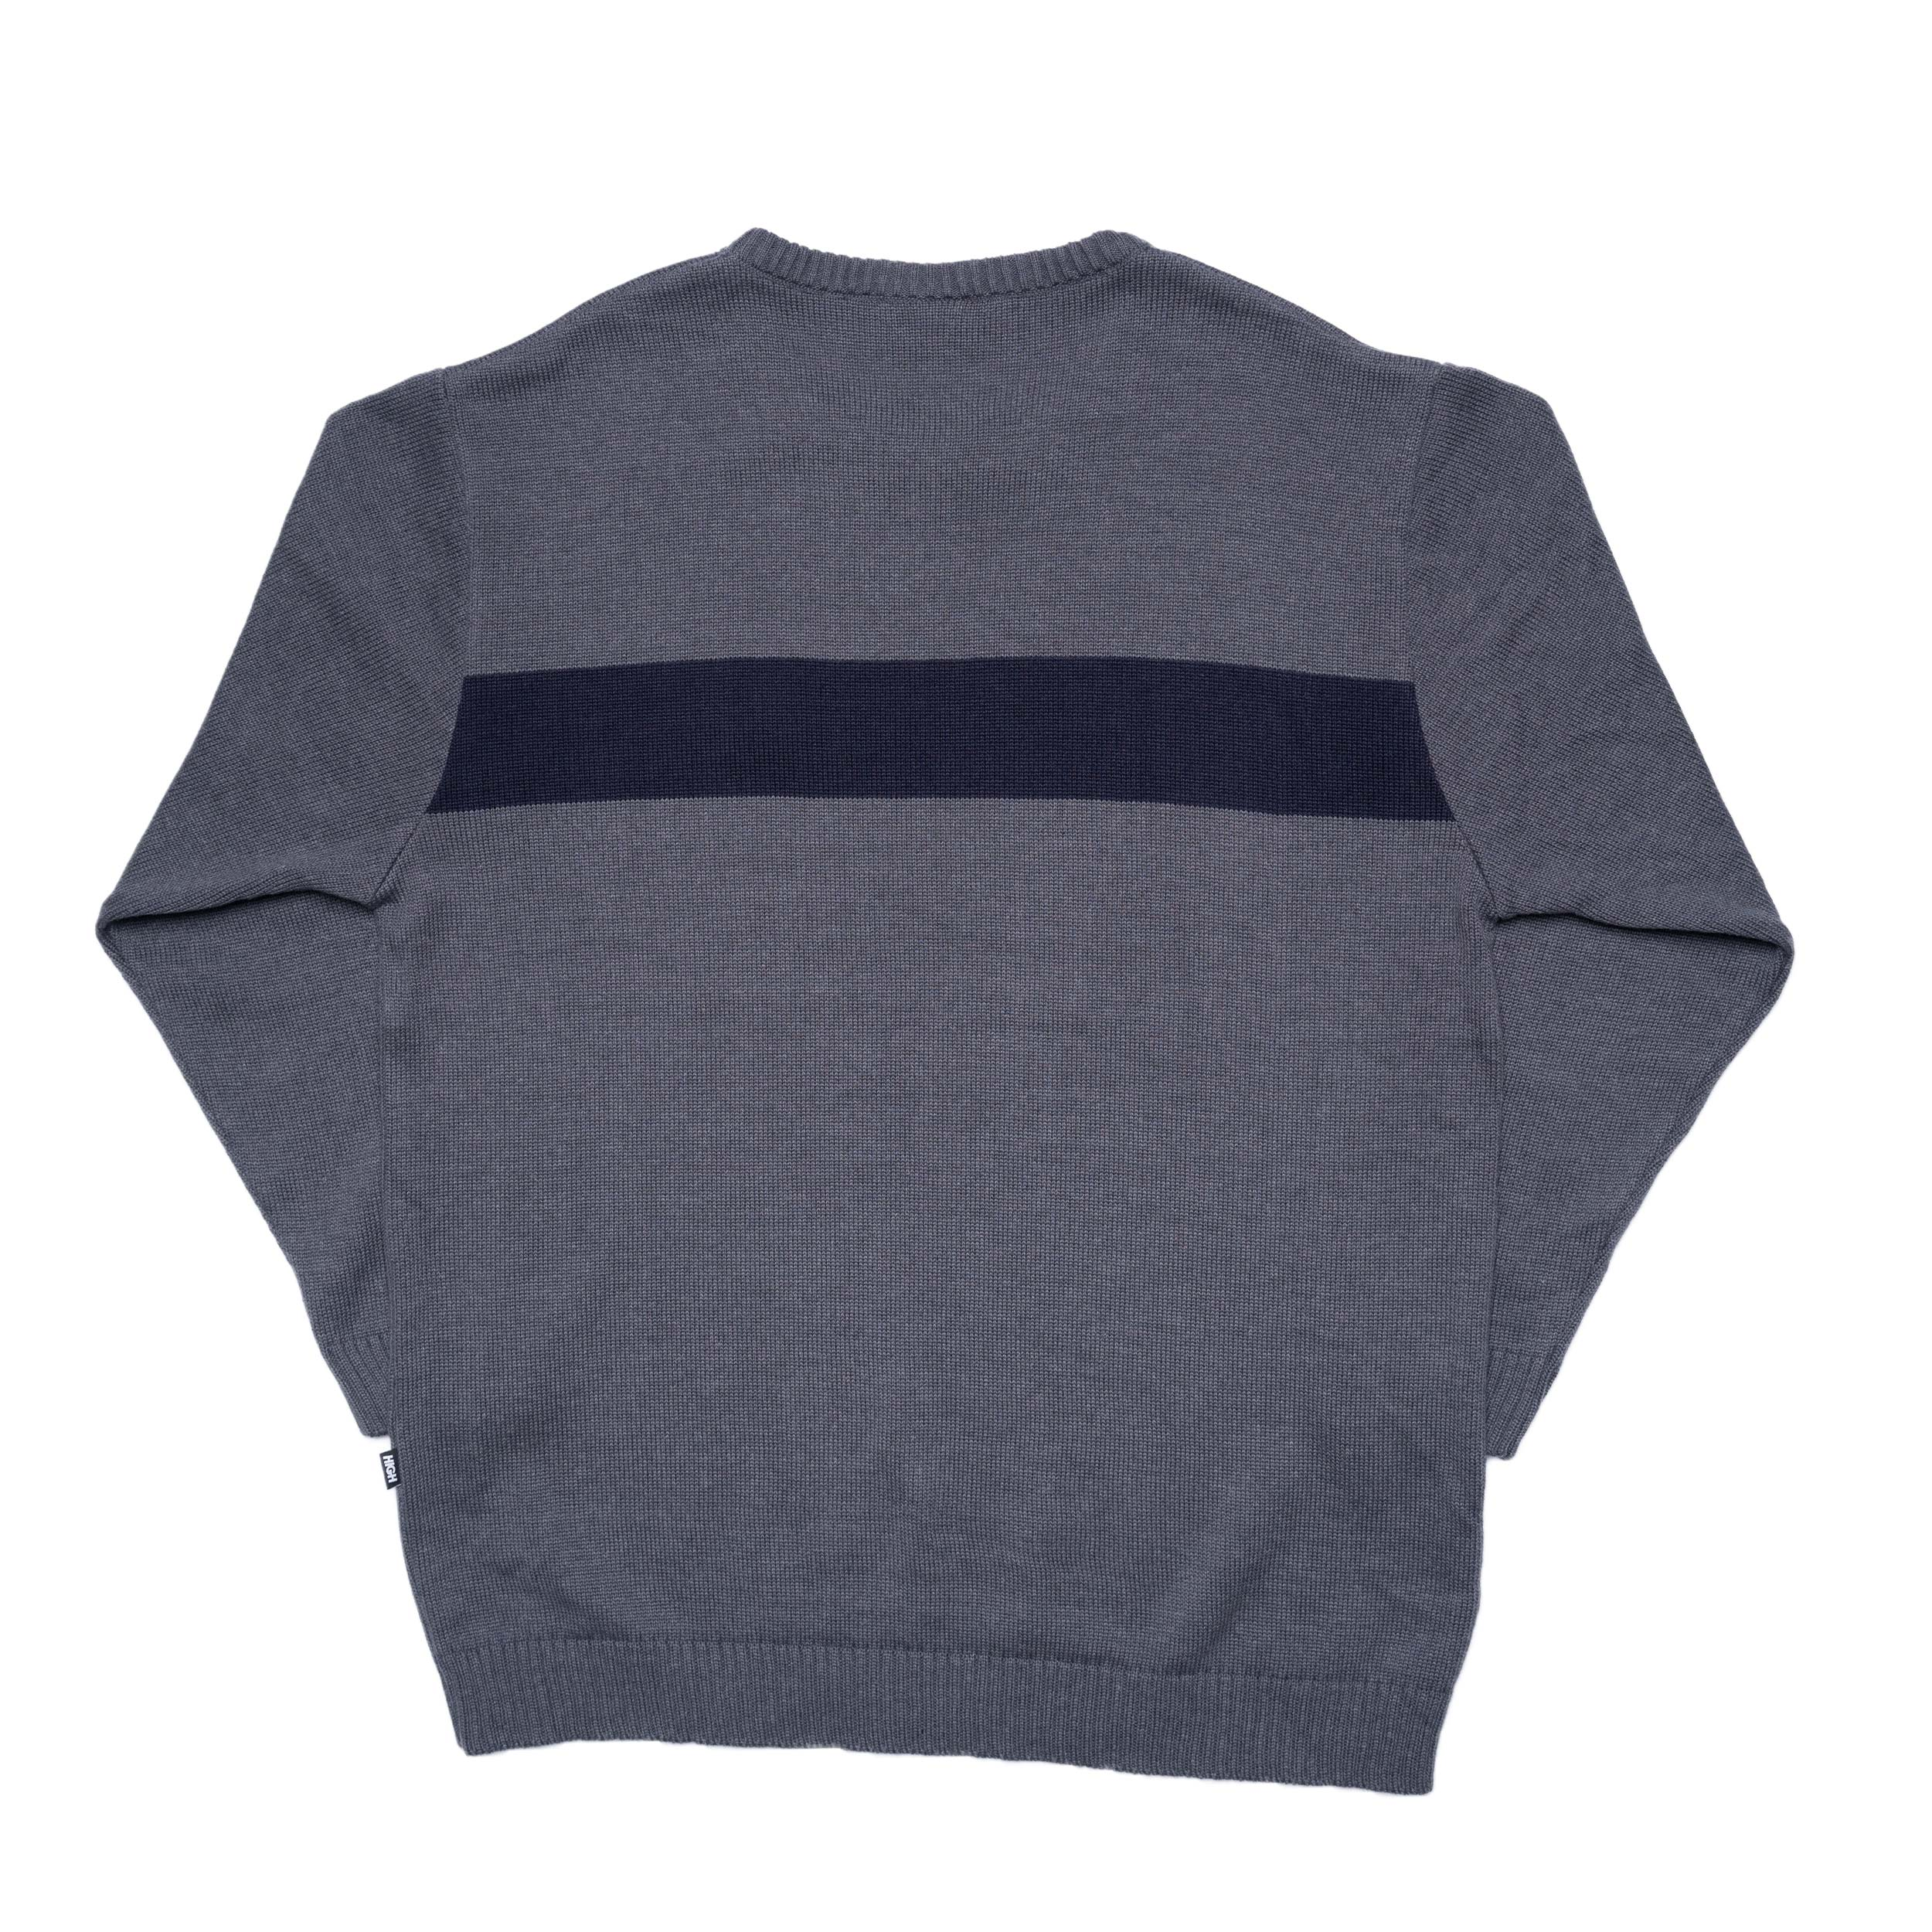 Knitwear_Grey_Navy